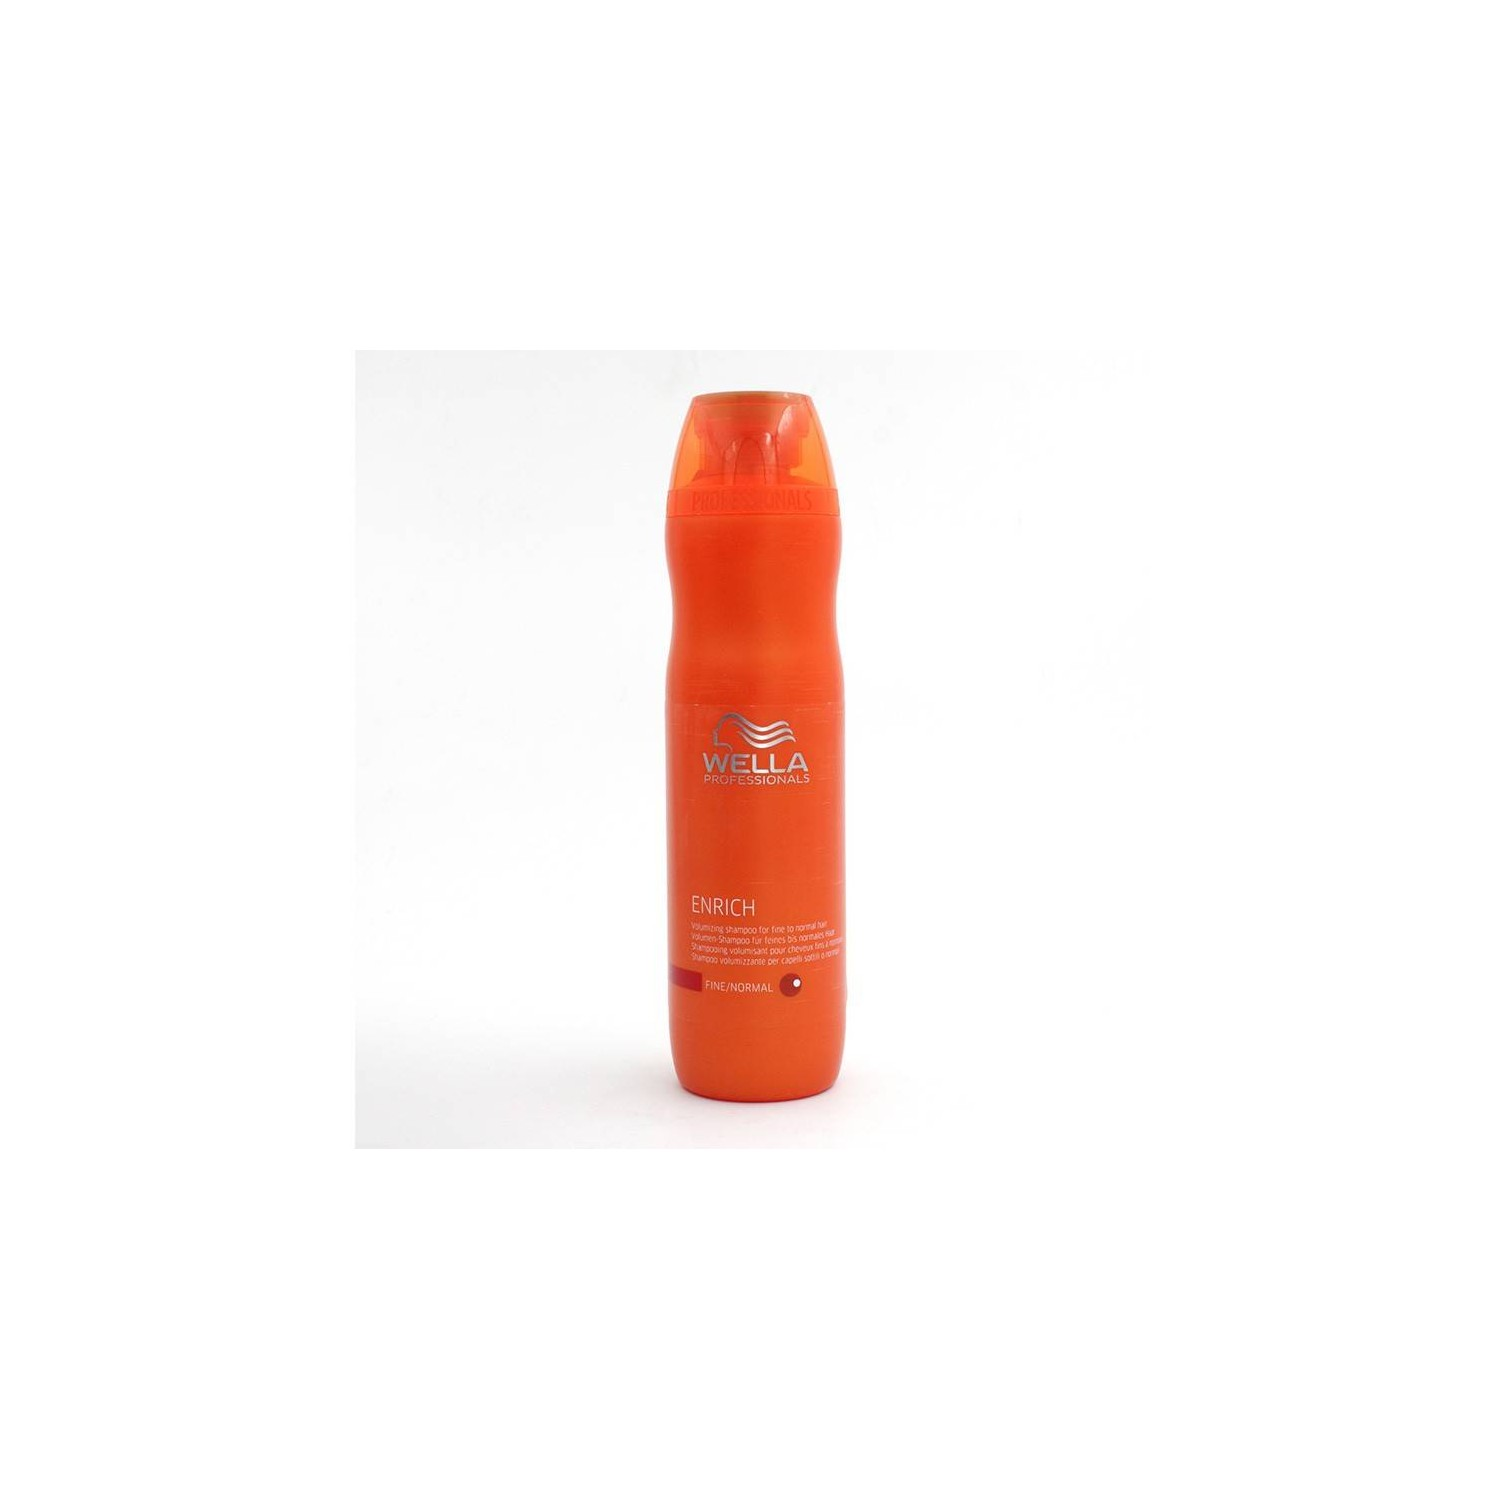 Wella Enrich Shampoo Shampoo Thin Hair/normal 250 Ml